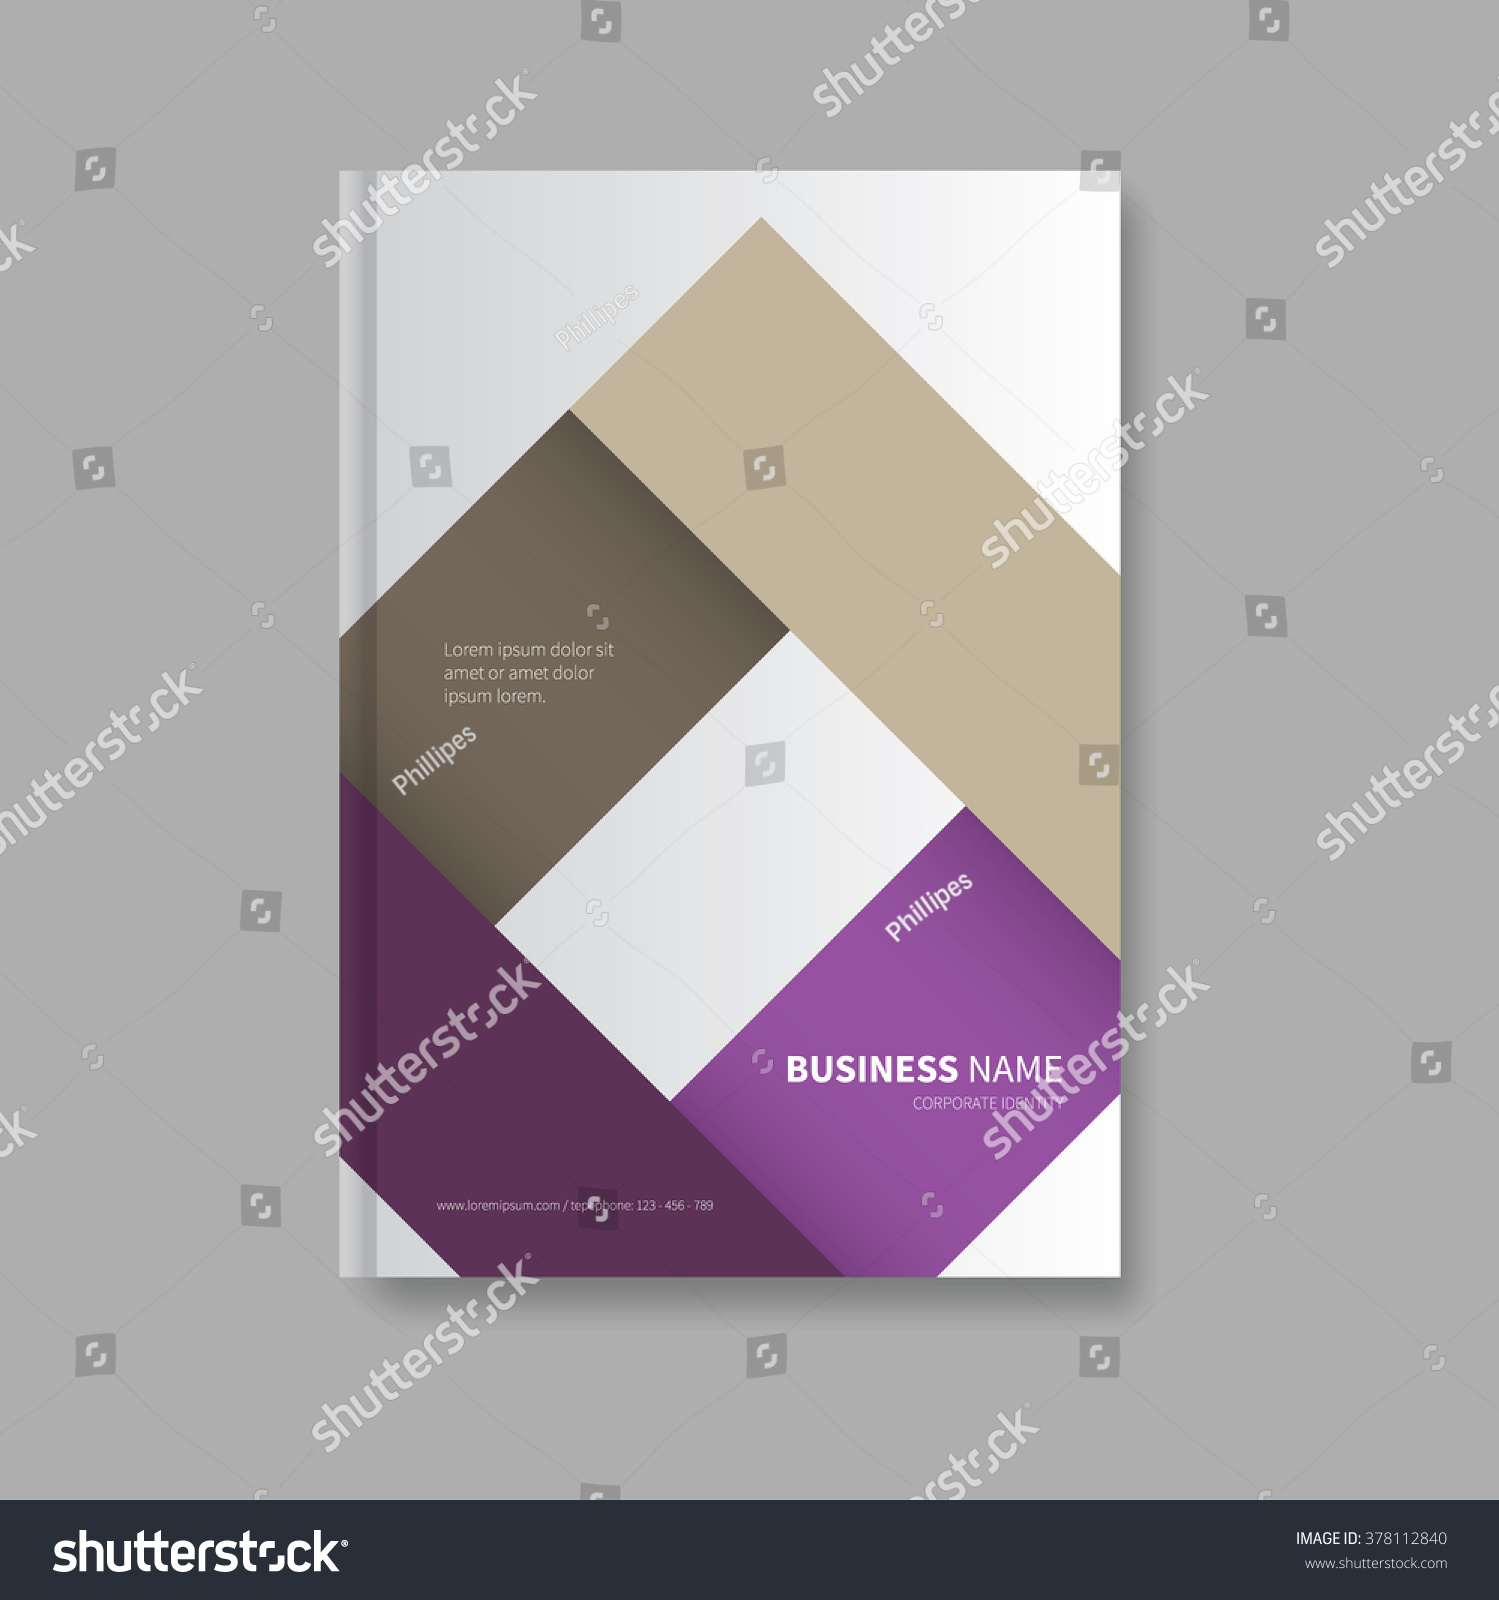 luxury business brochure cover square element in background luxury business brochure cover square element in background annual report corporate professional